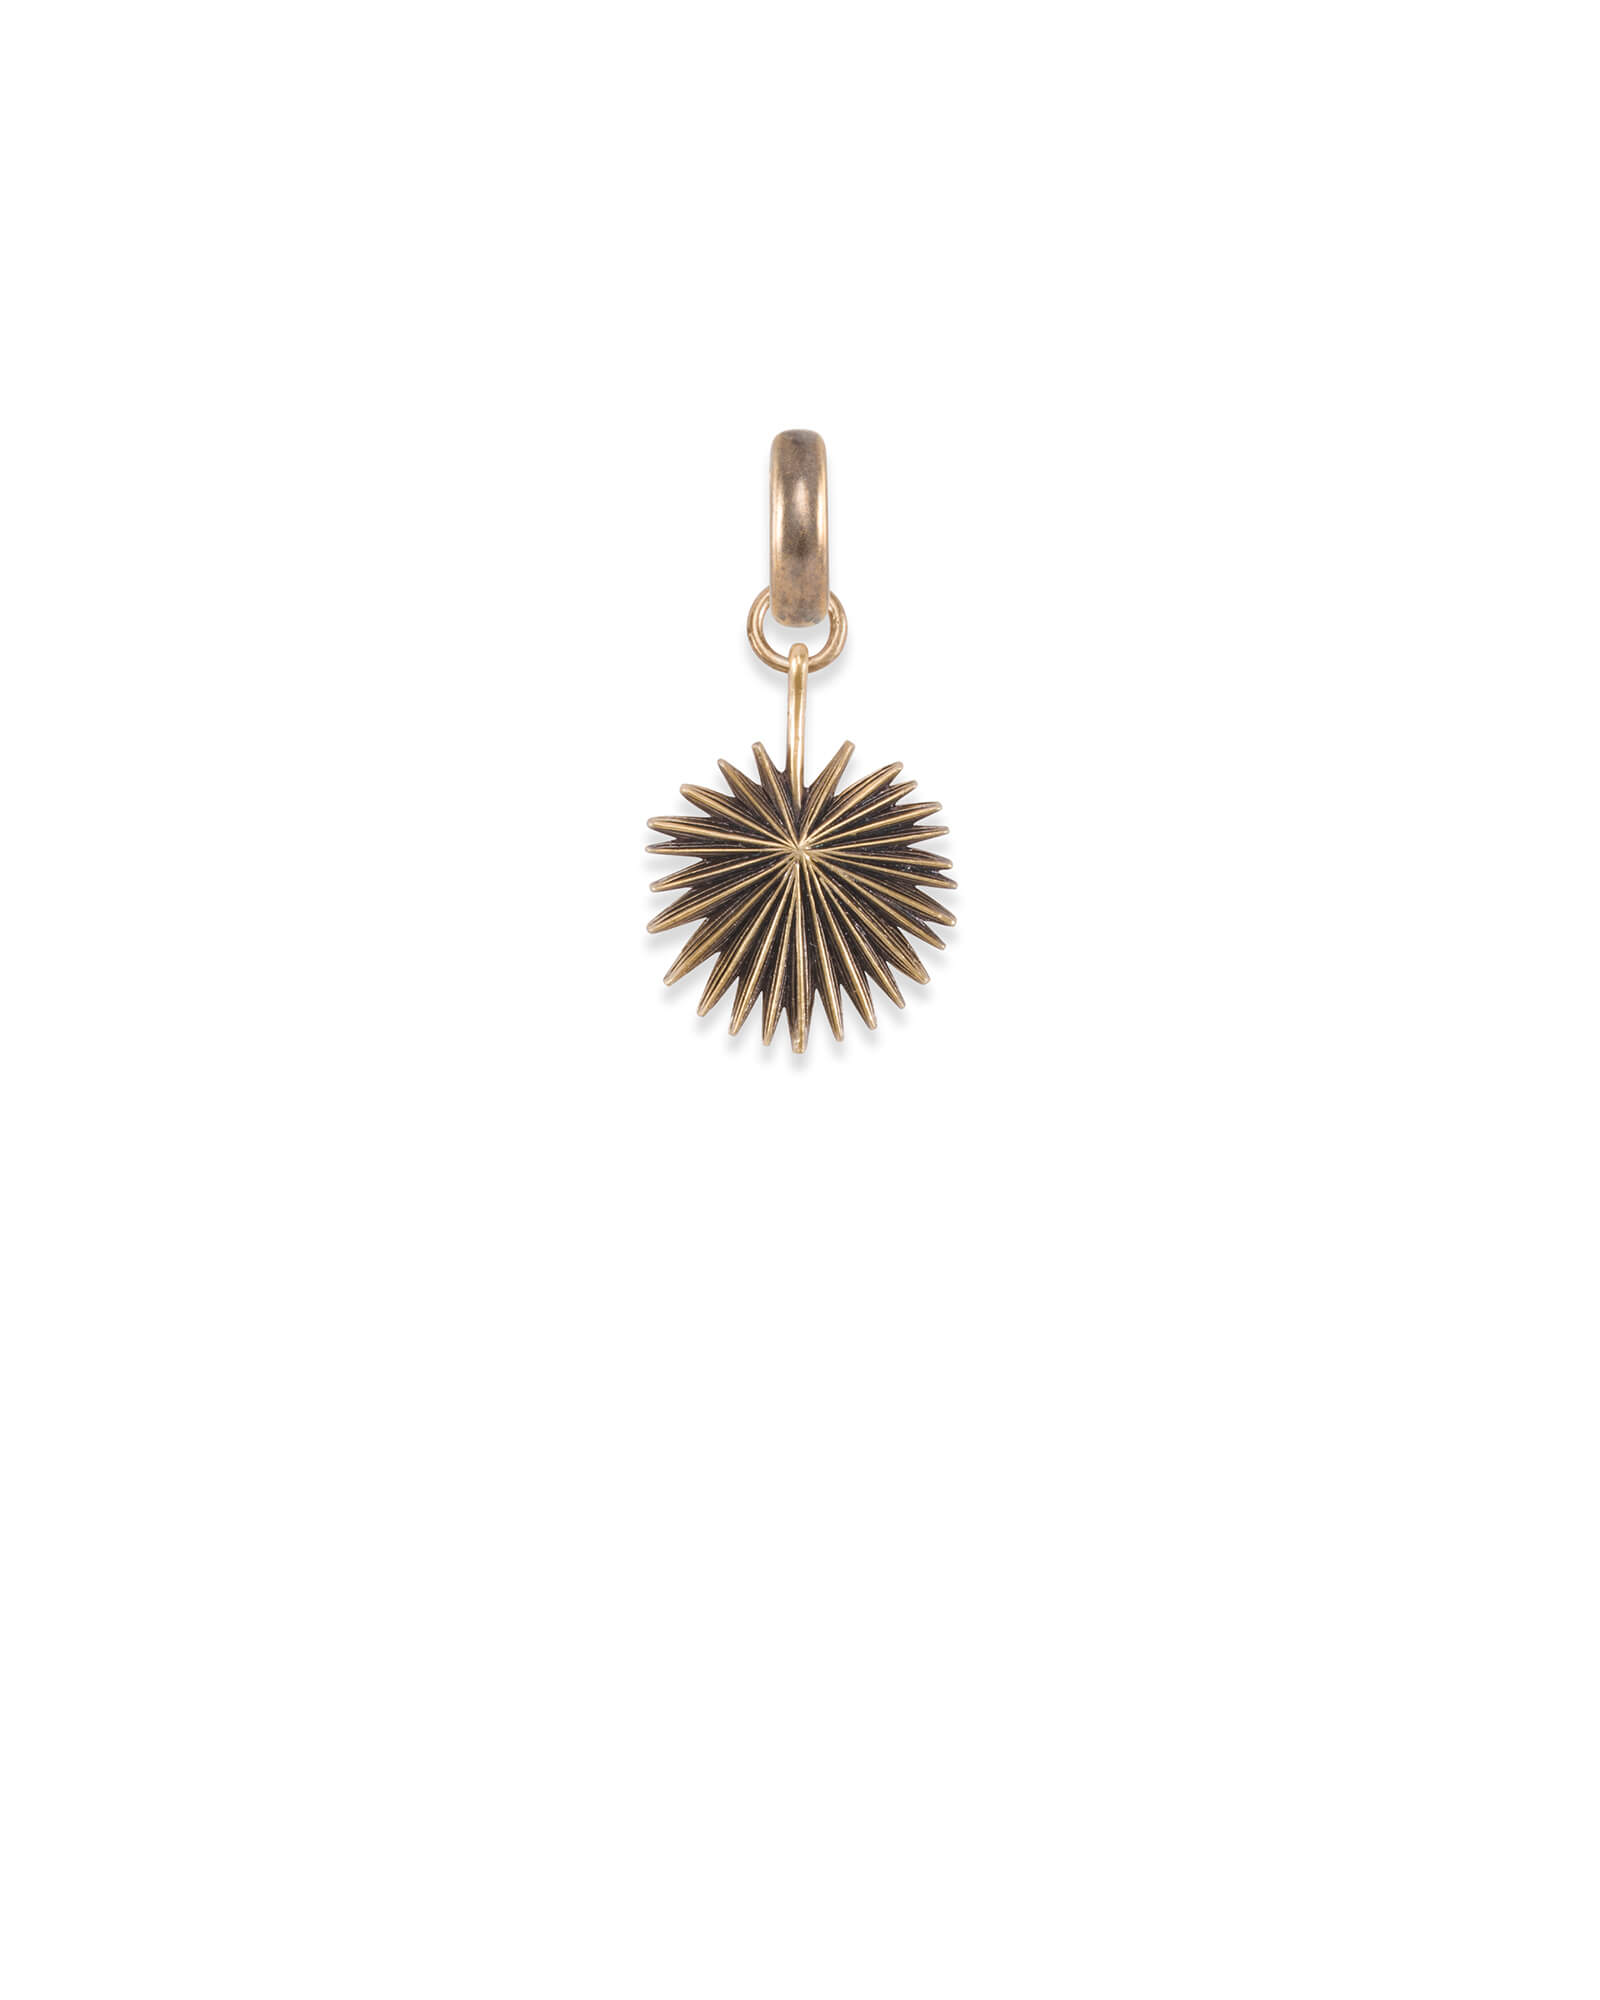 South Carolina Sabal Palmetto Charm in Vintage Gold